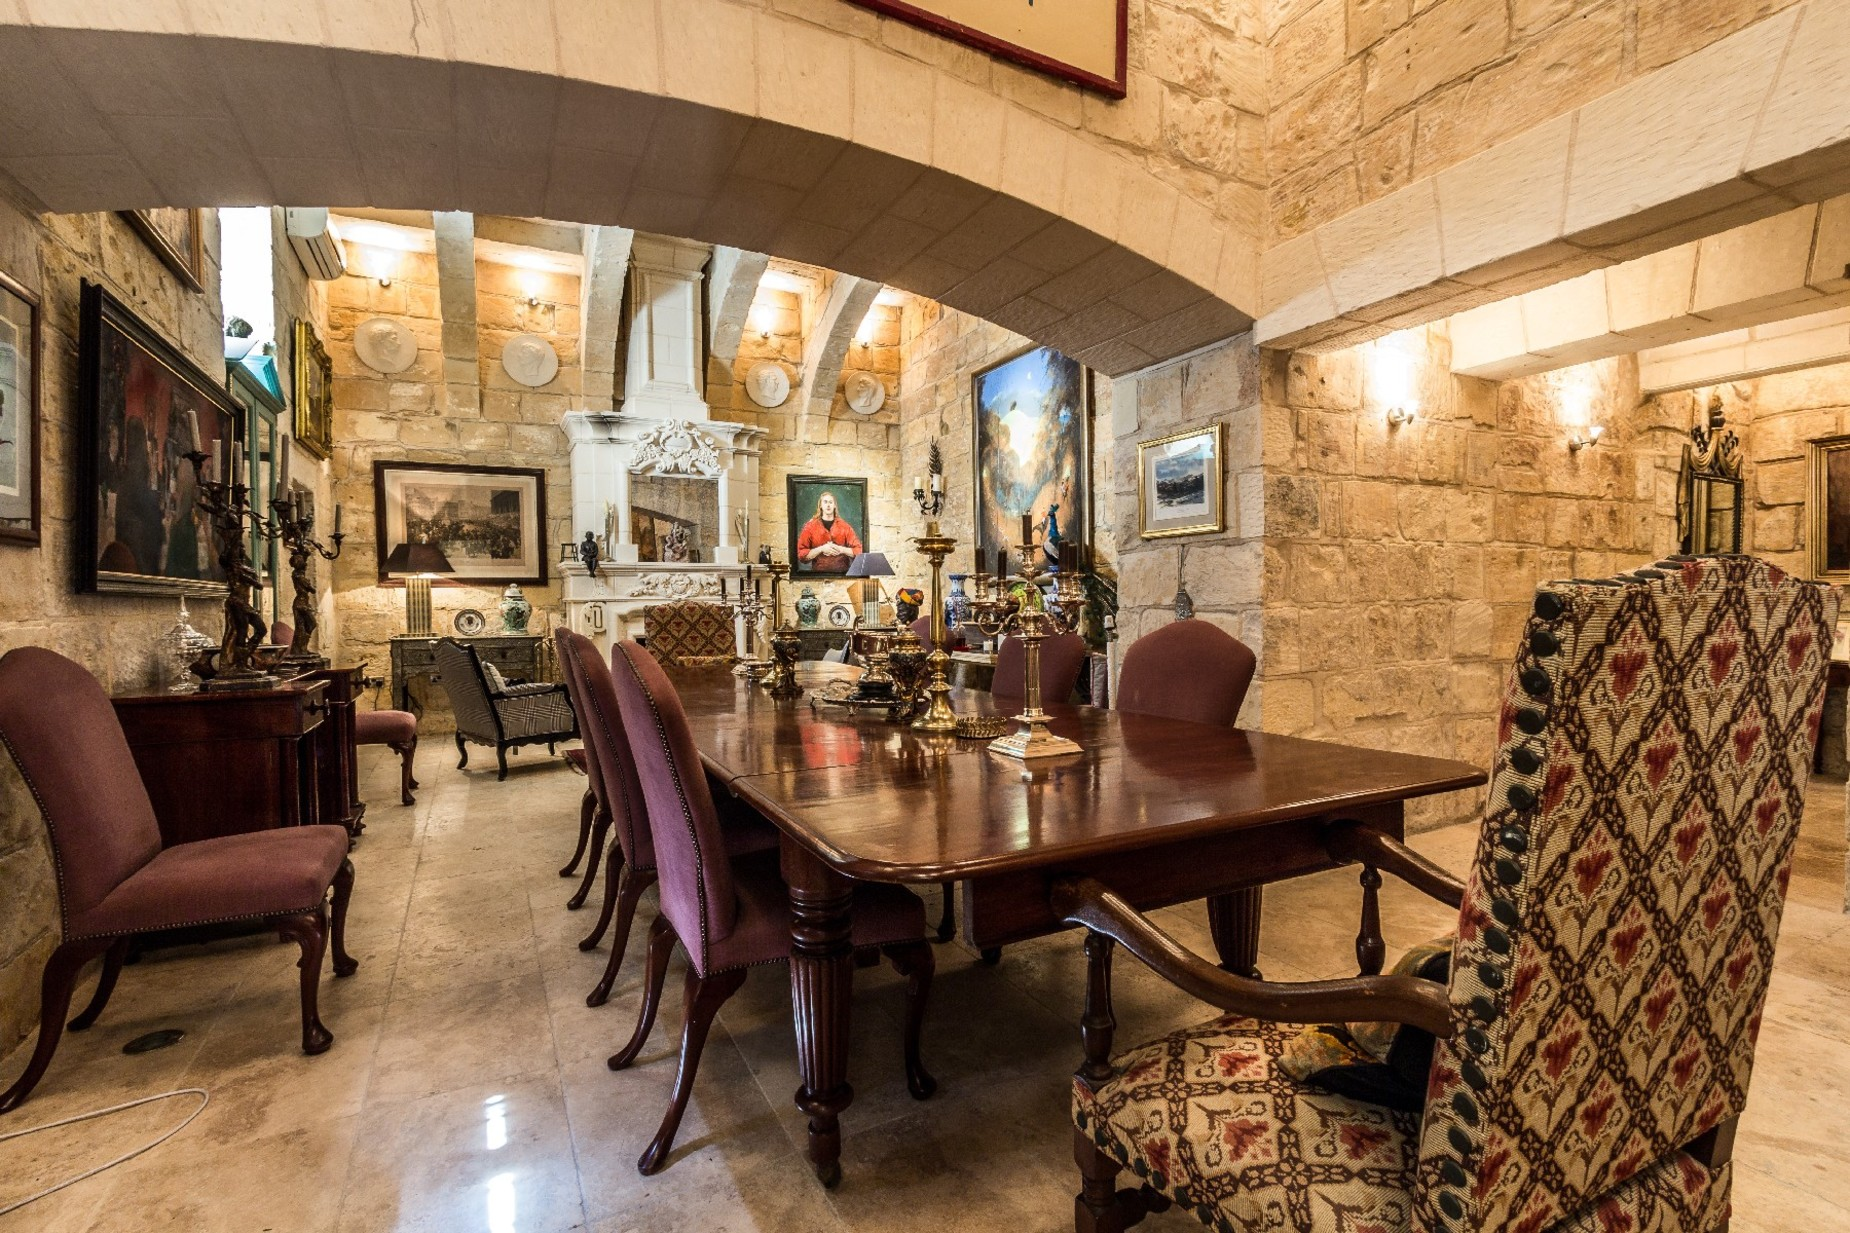 5 bed Town House For Rent in Cospicua, Cospicua - thumb 4